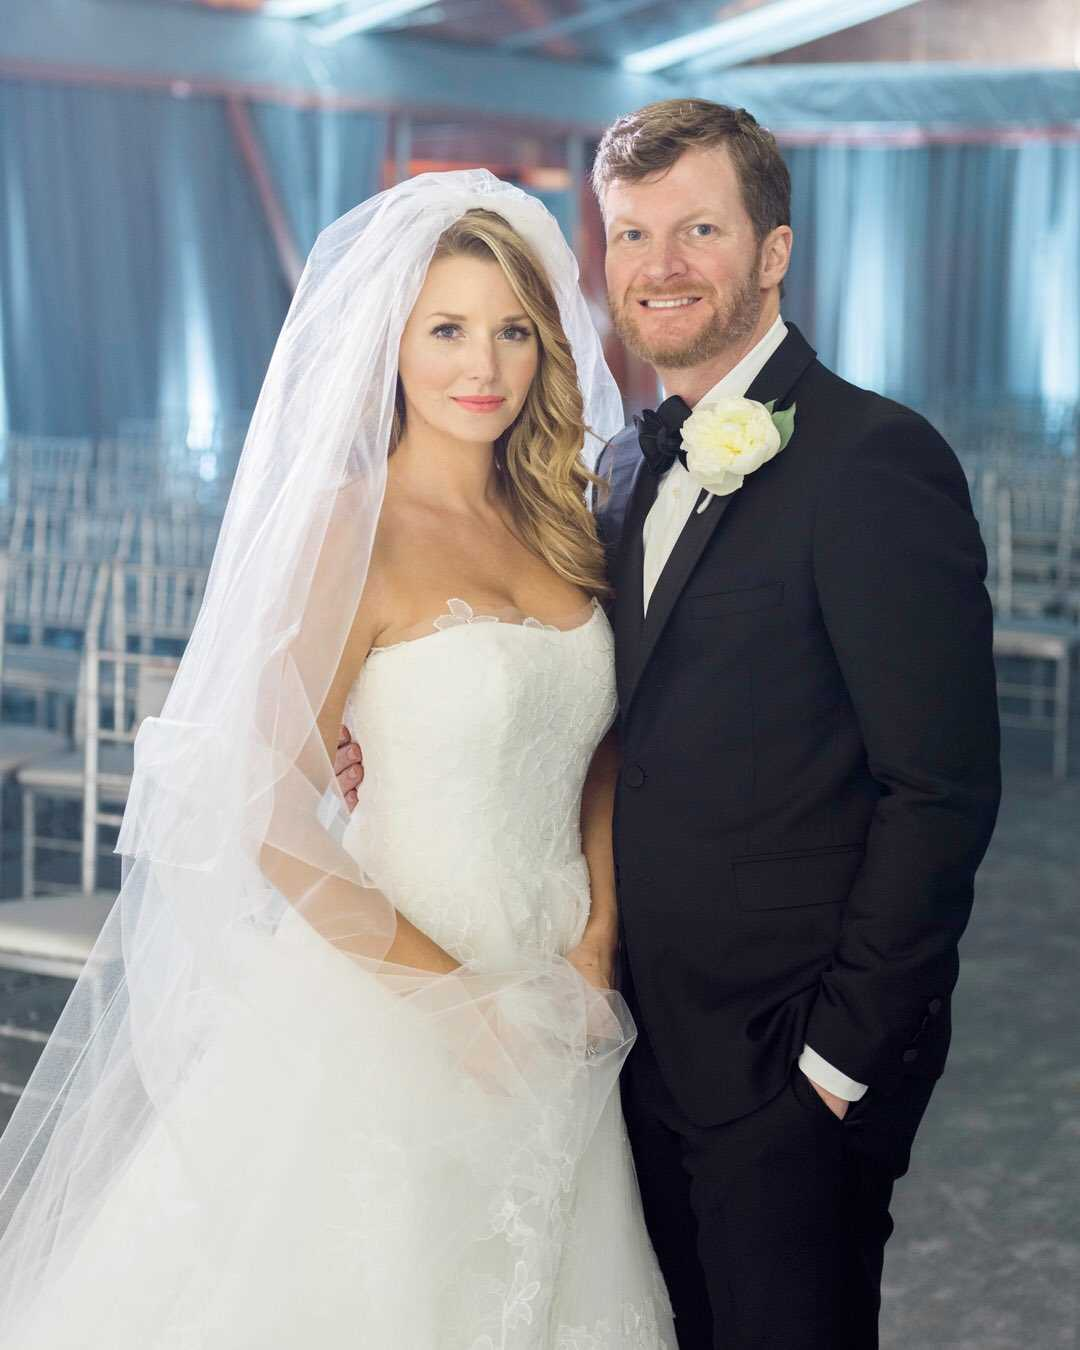 Photos From Reimann Earnhardt Wedding Official Site Of Nascar Broke up amy reimann's marriage with tommy cook. photos from reimann earnhardt wedding